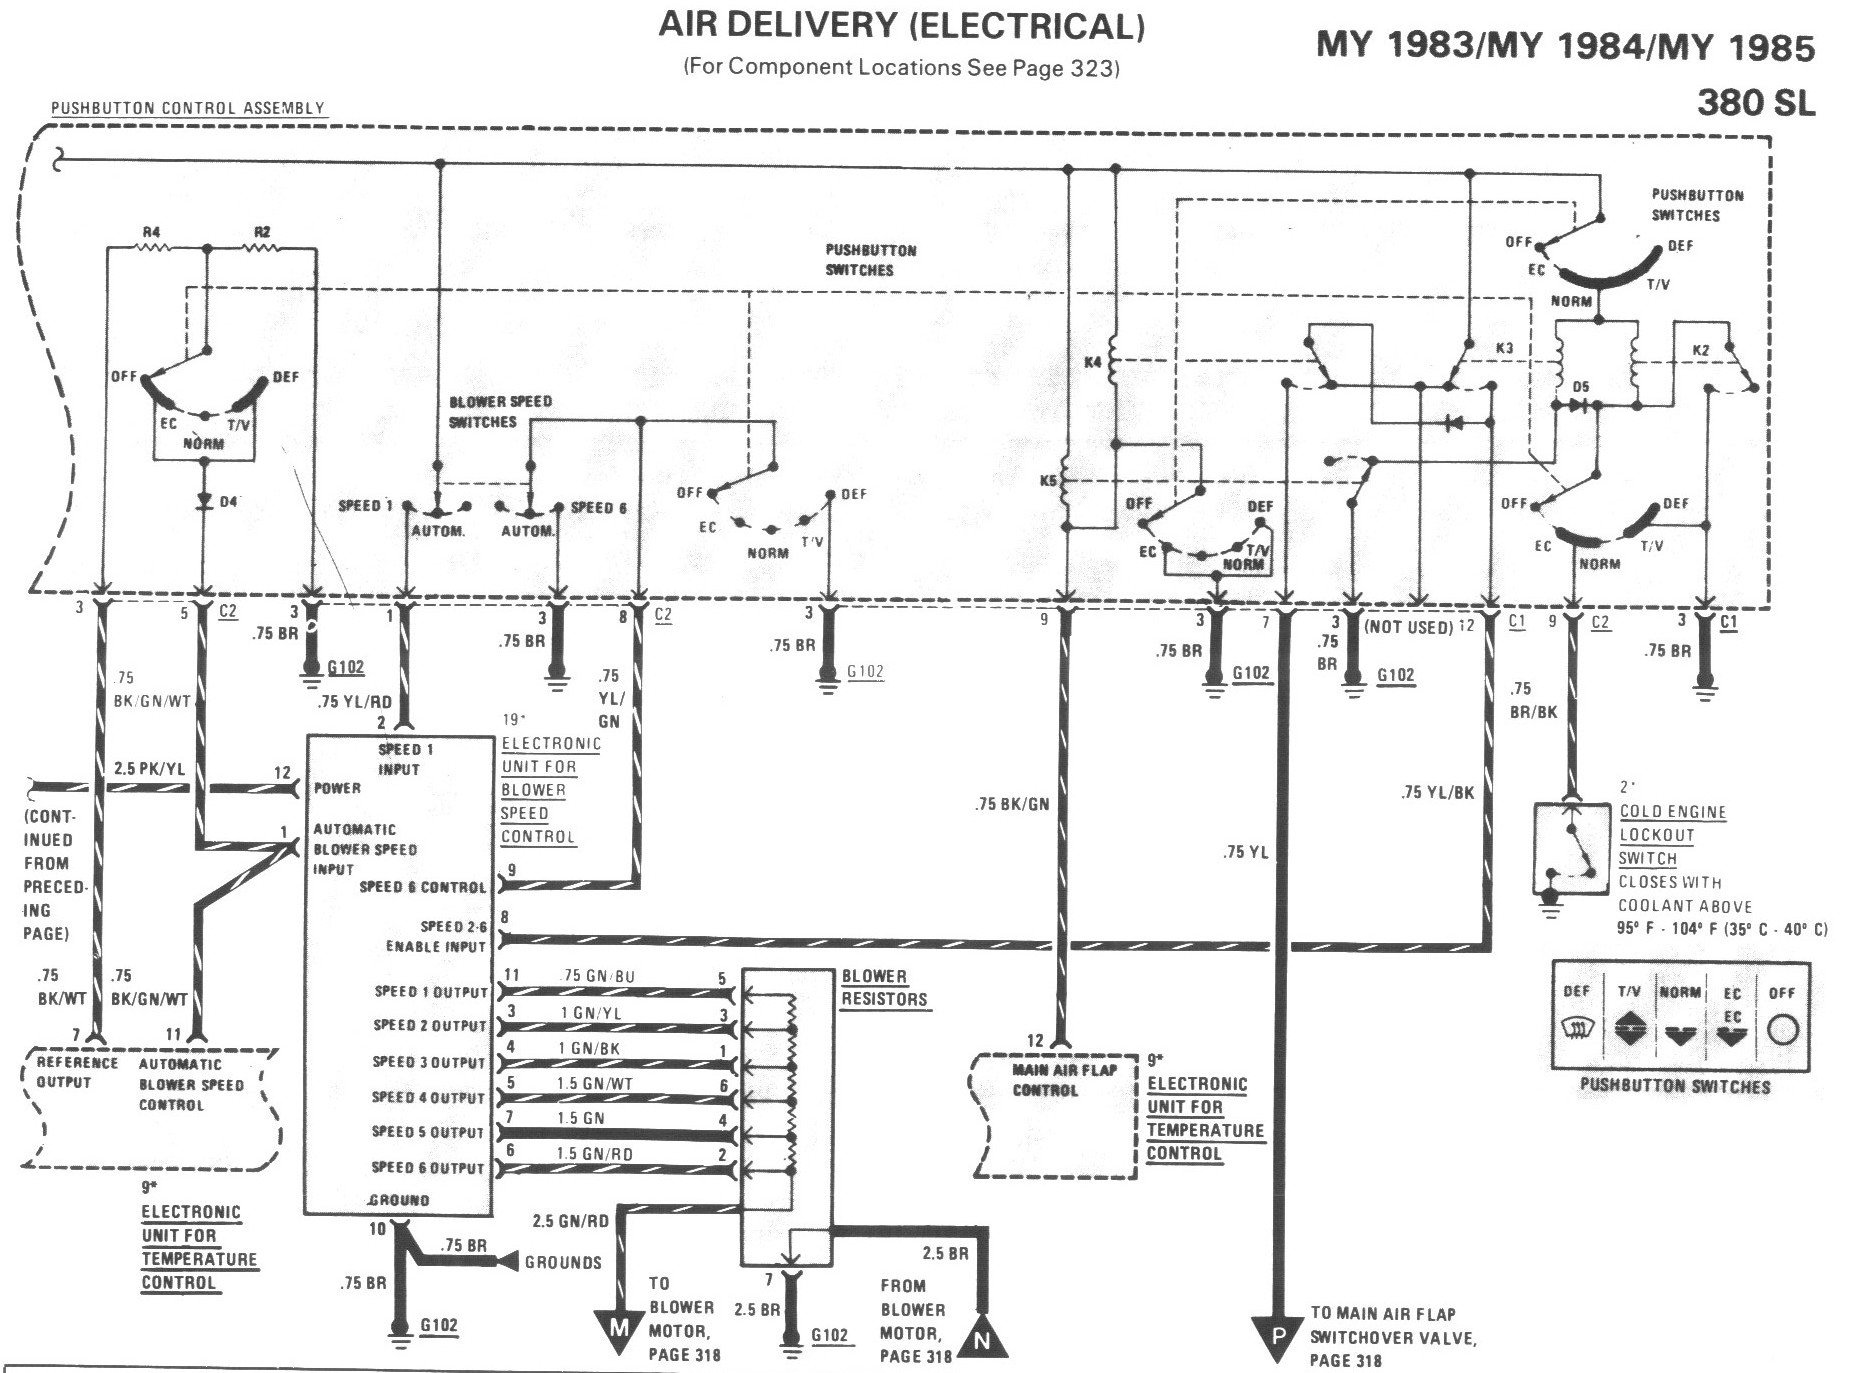 Mercedes Benz Wiring Diagram 1985 300sd Diagrams 300d 1983 190e 300 Td